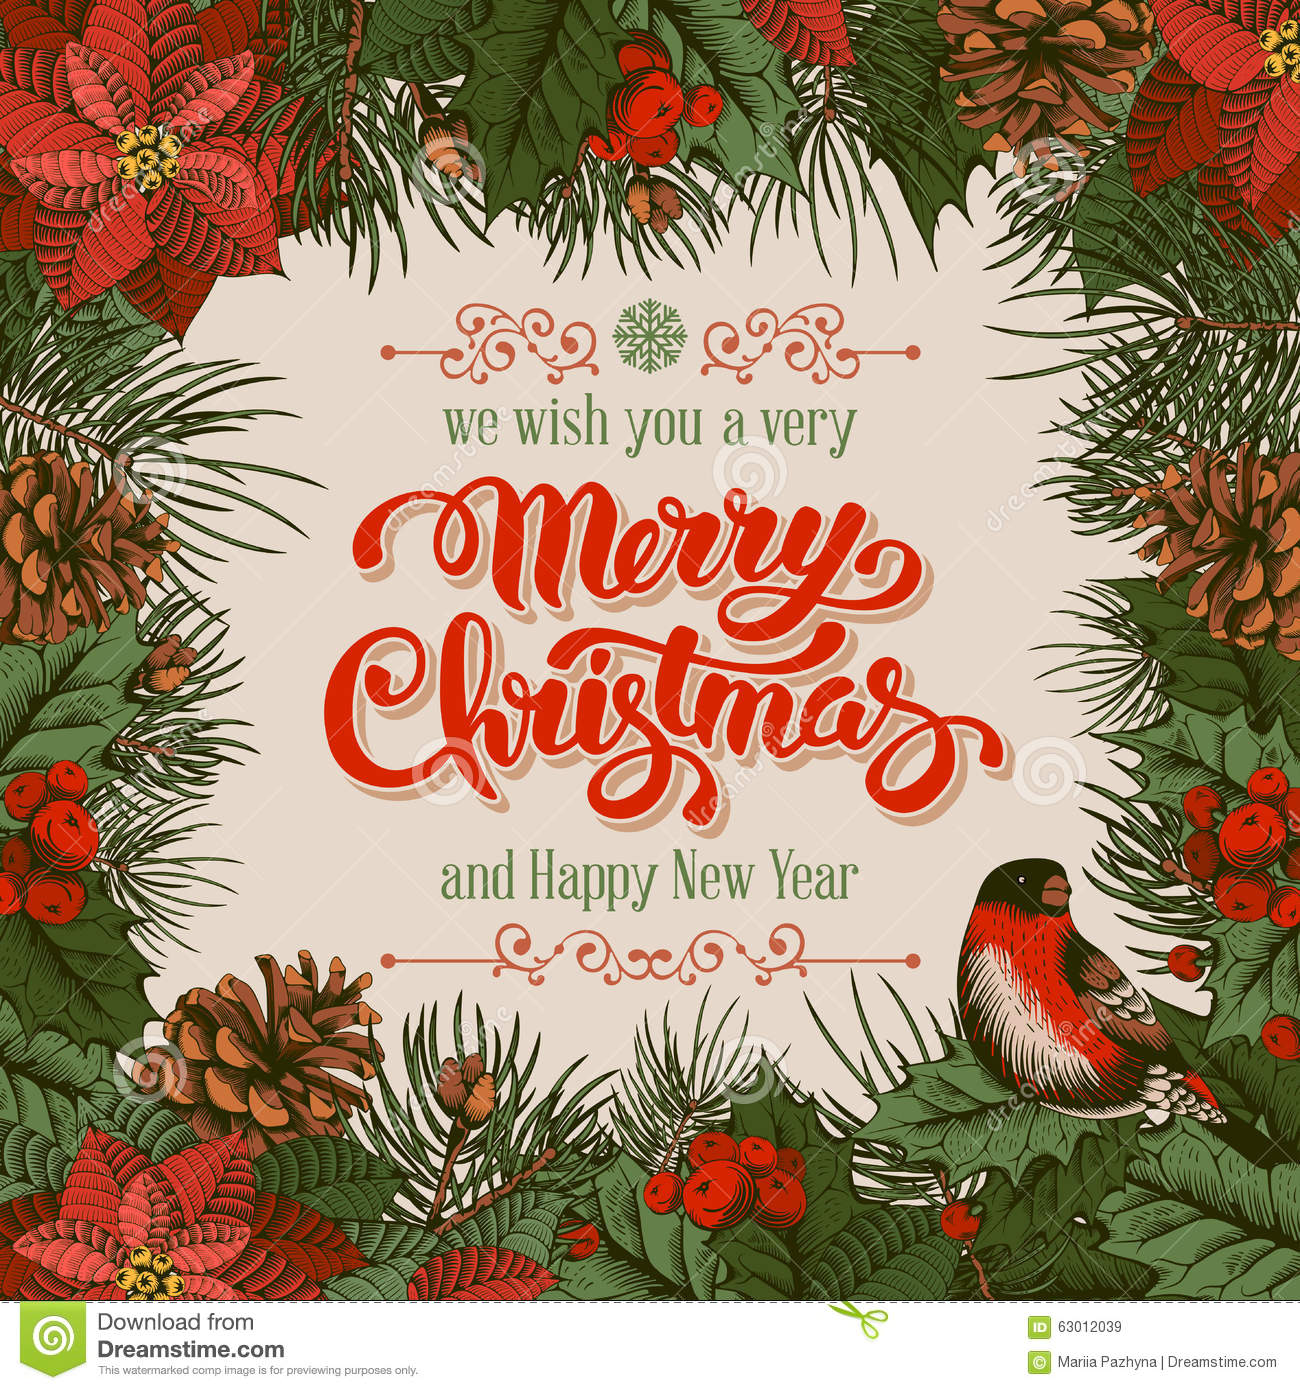 Merry Christmas card stock vector. Illustration of poinsettia - 63012039